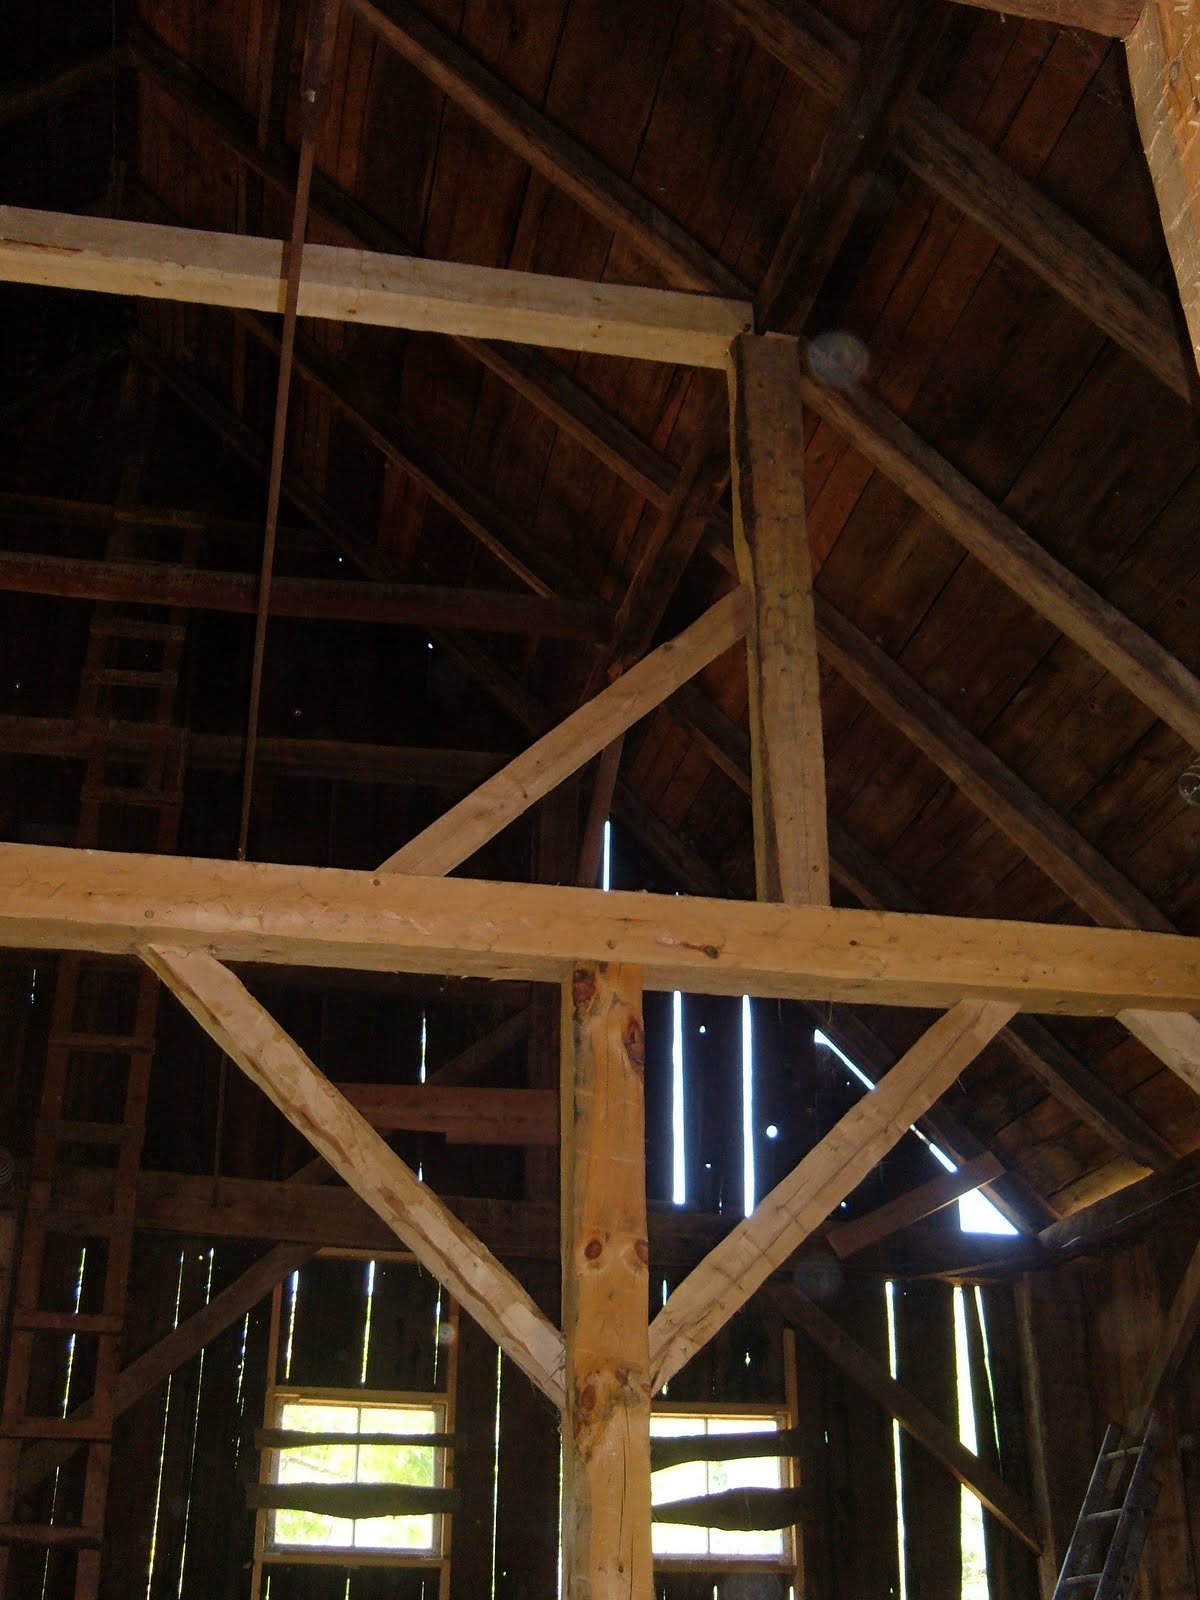 On top of the new bent we added a purlin post and staining beam to help support the roof.